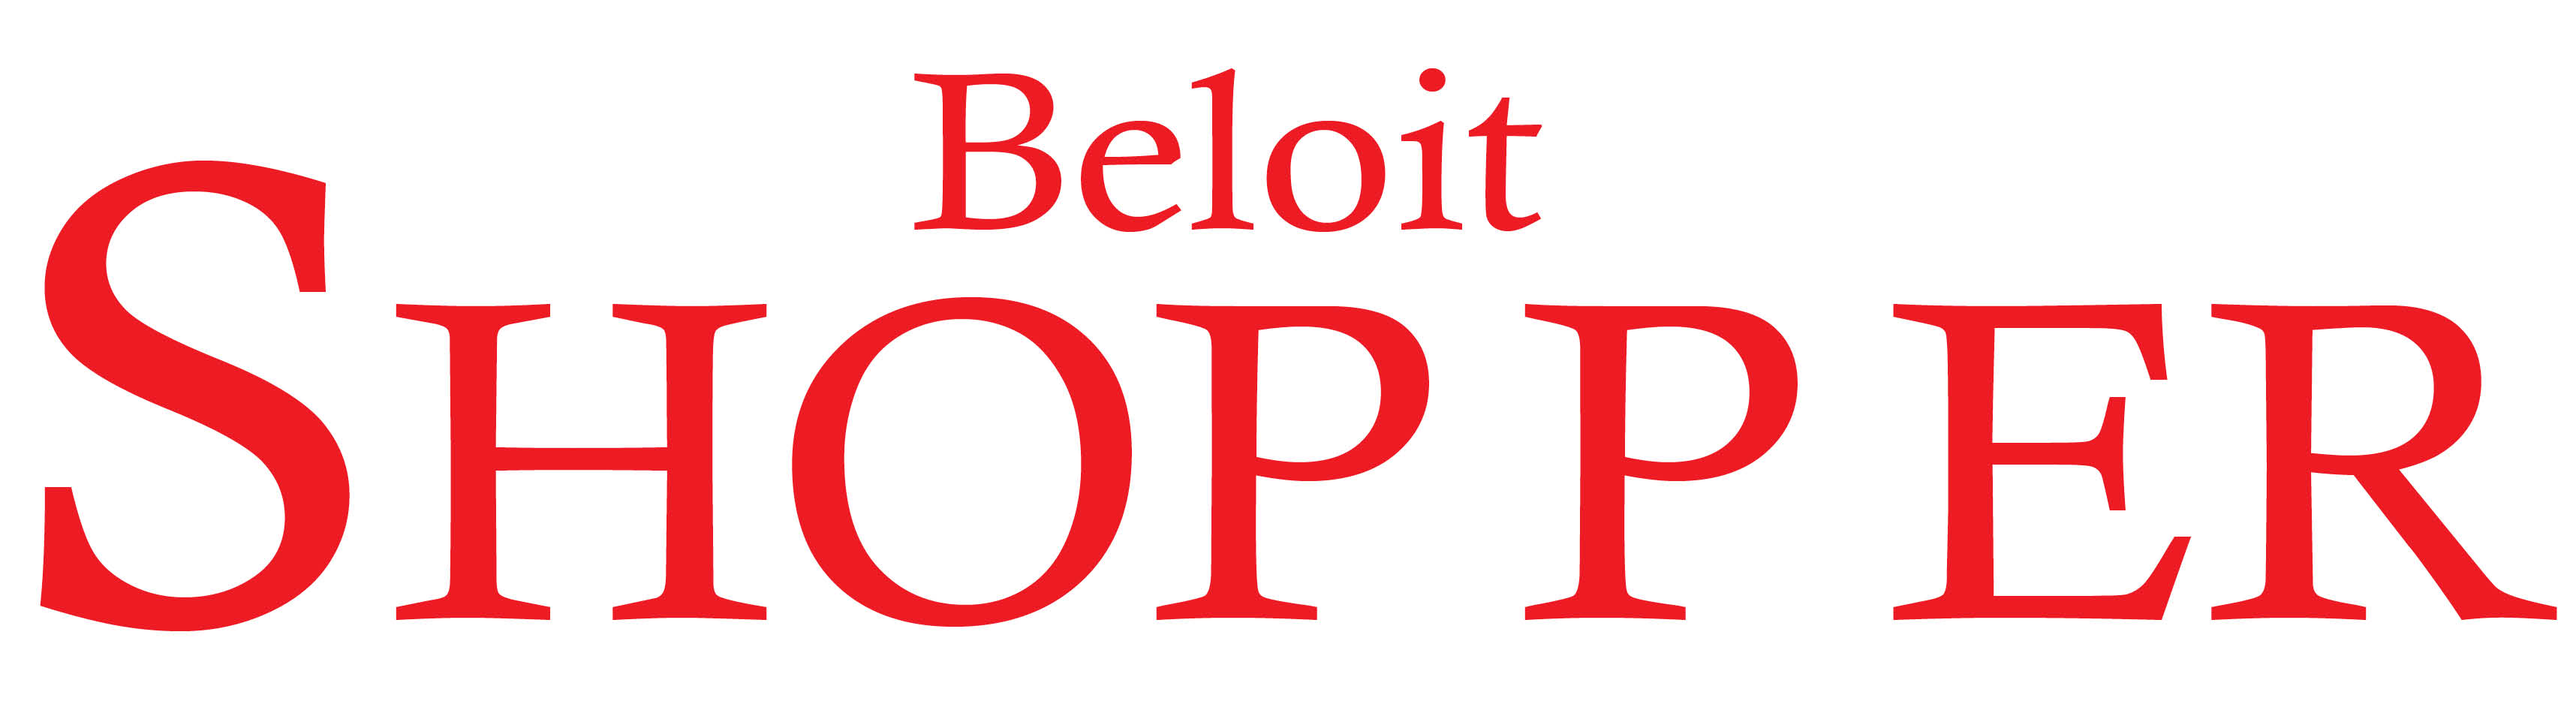 8/24/17 Beloit Shopper